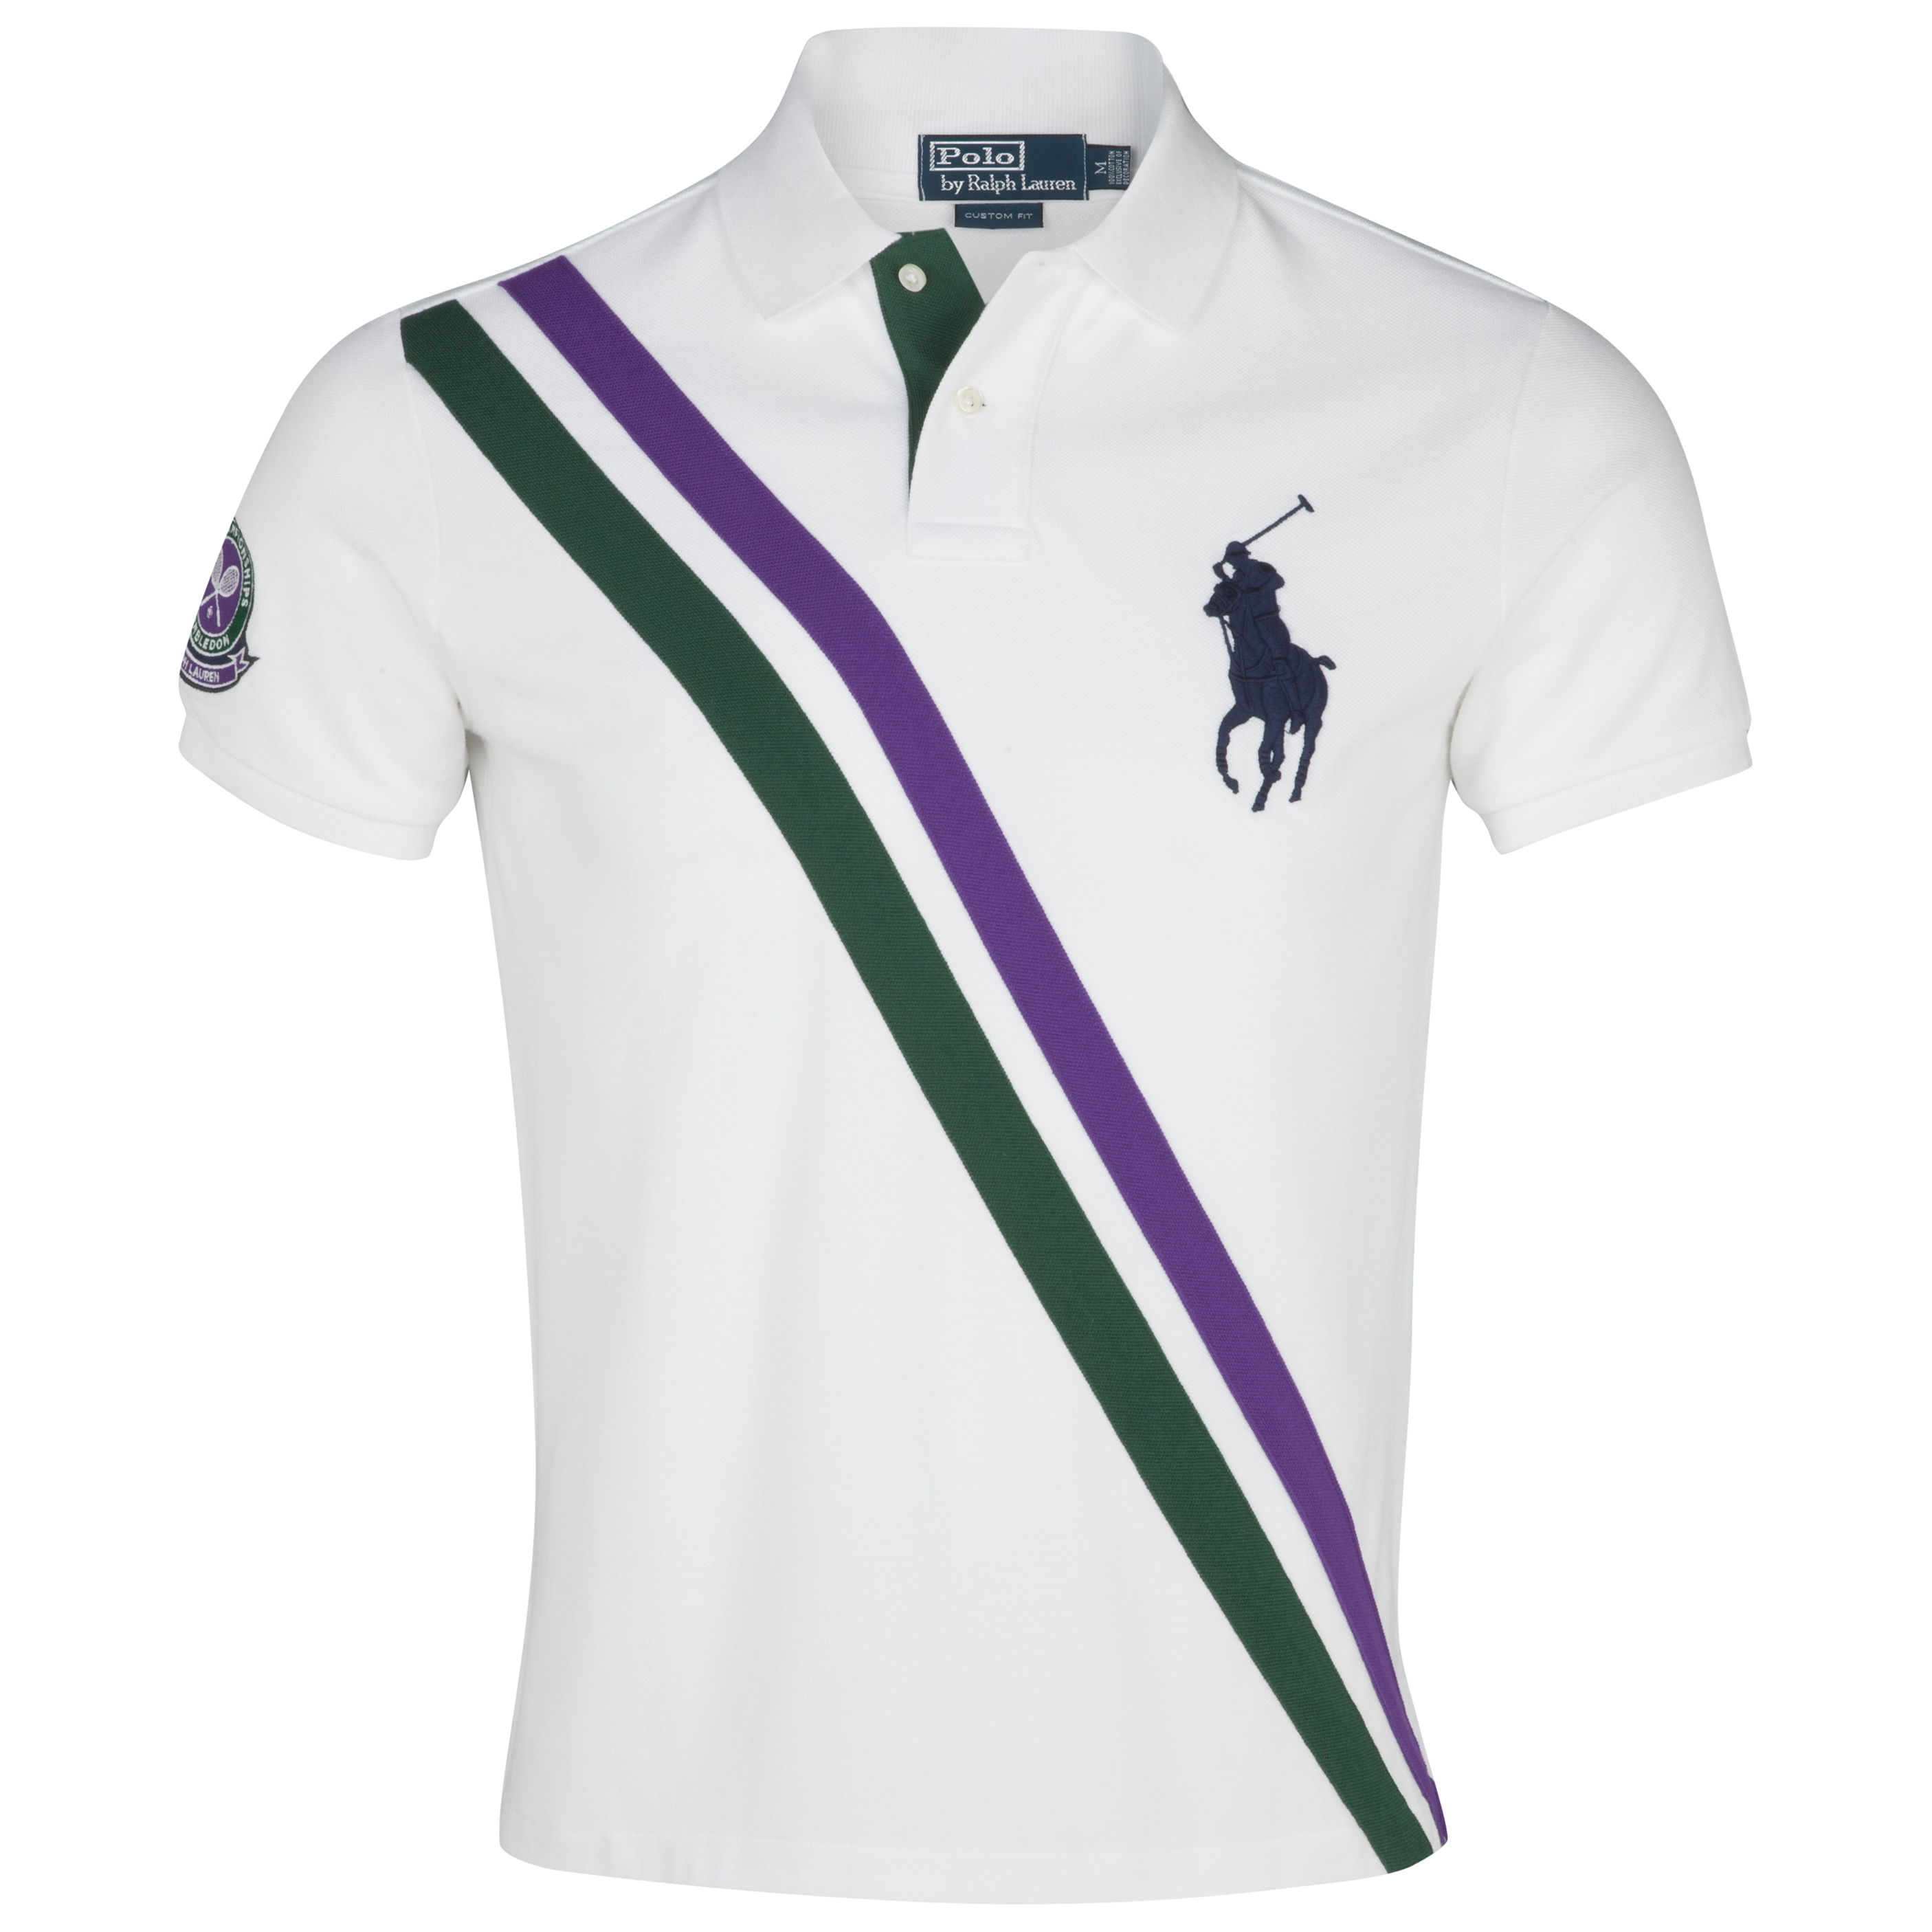 Polo Ralph Lauren Wimbledon Short Sleeve Polo - Oxford White/Northwest Pine/Purple